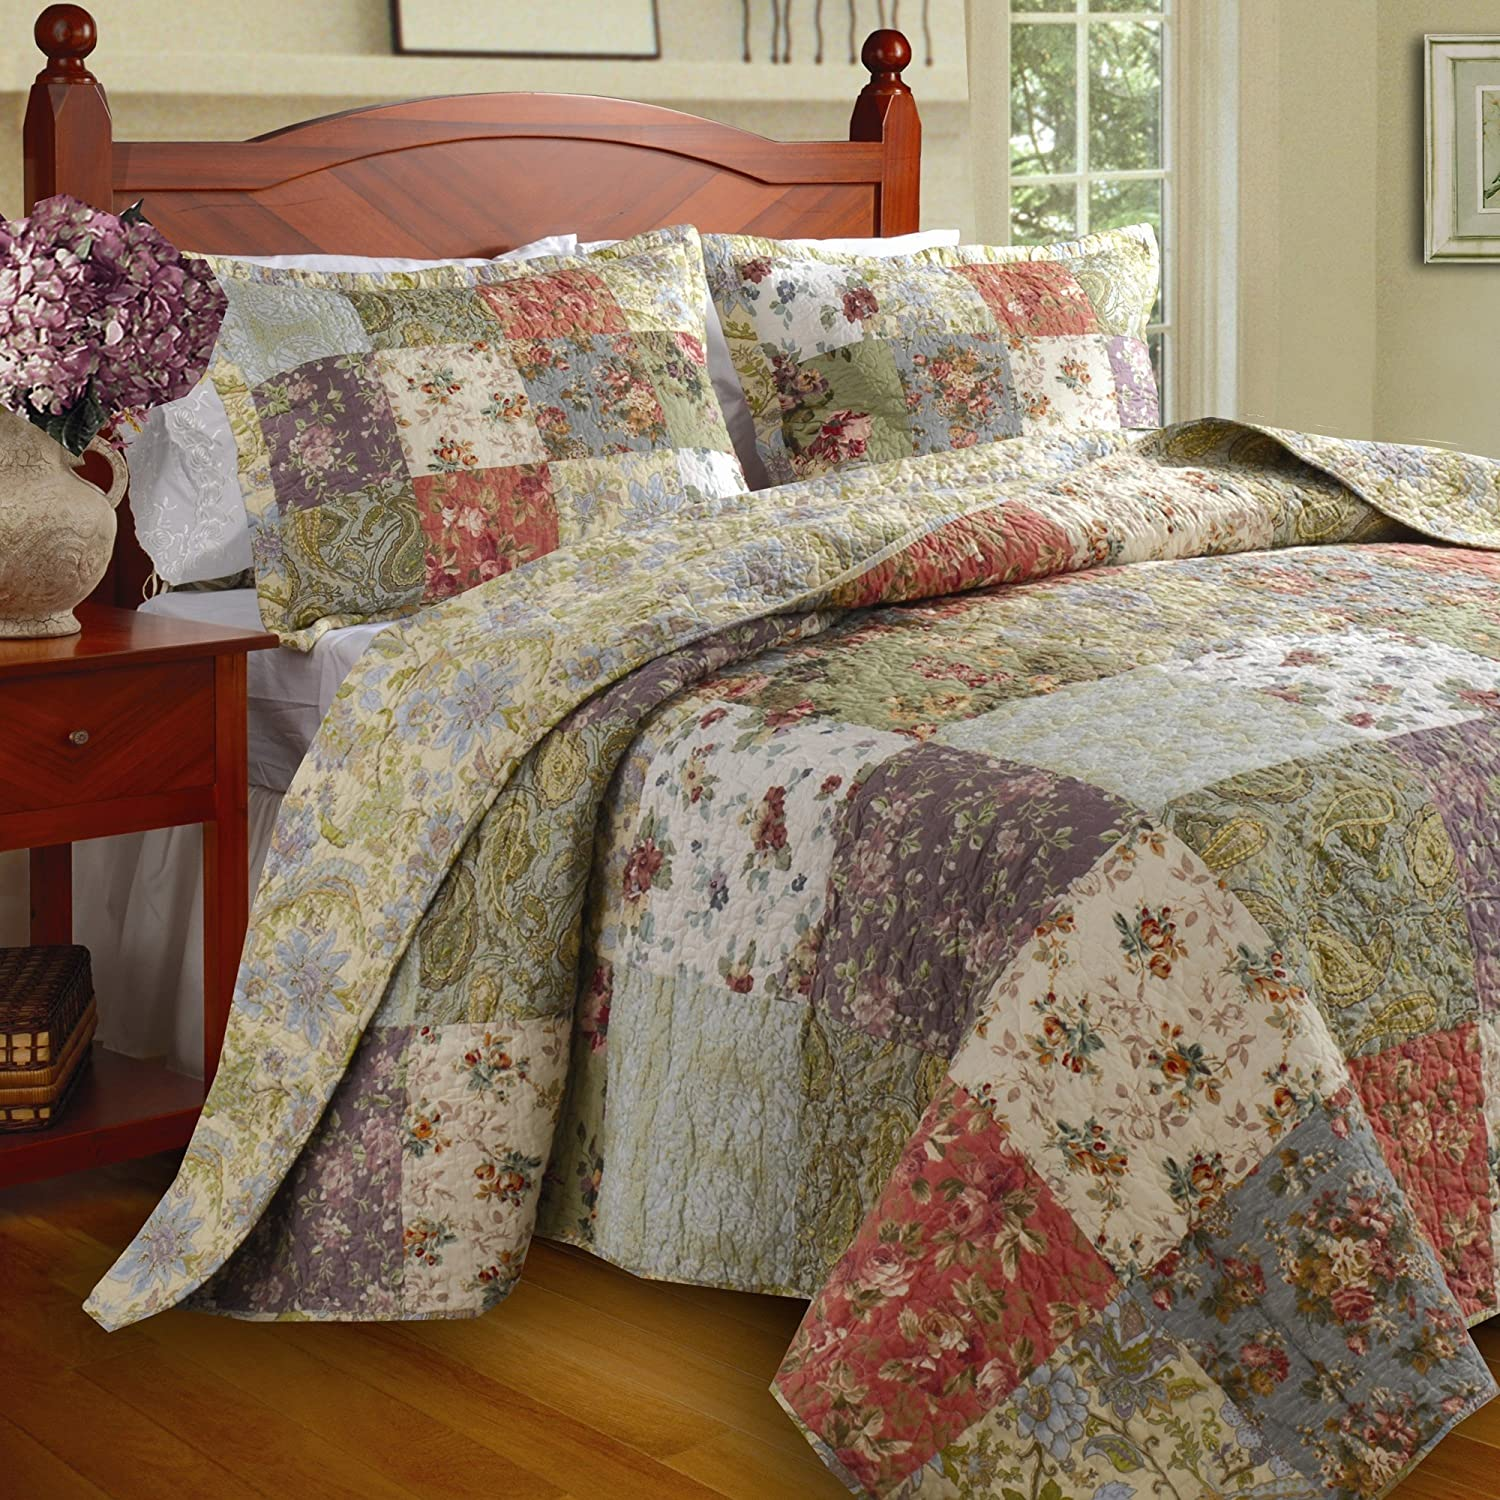 Floral Patchwork Quilt & Bedding Set on Sale, 100% Cotton